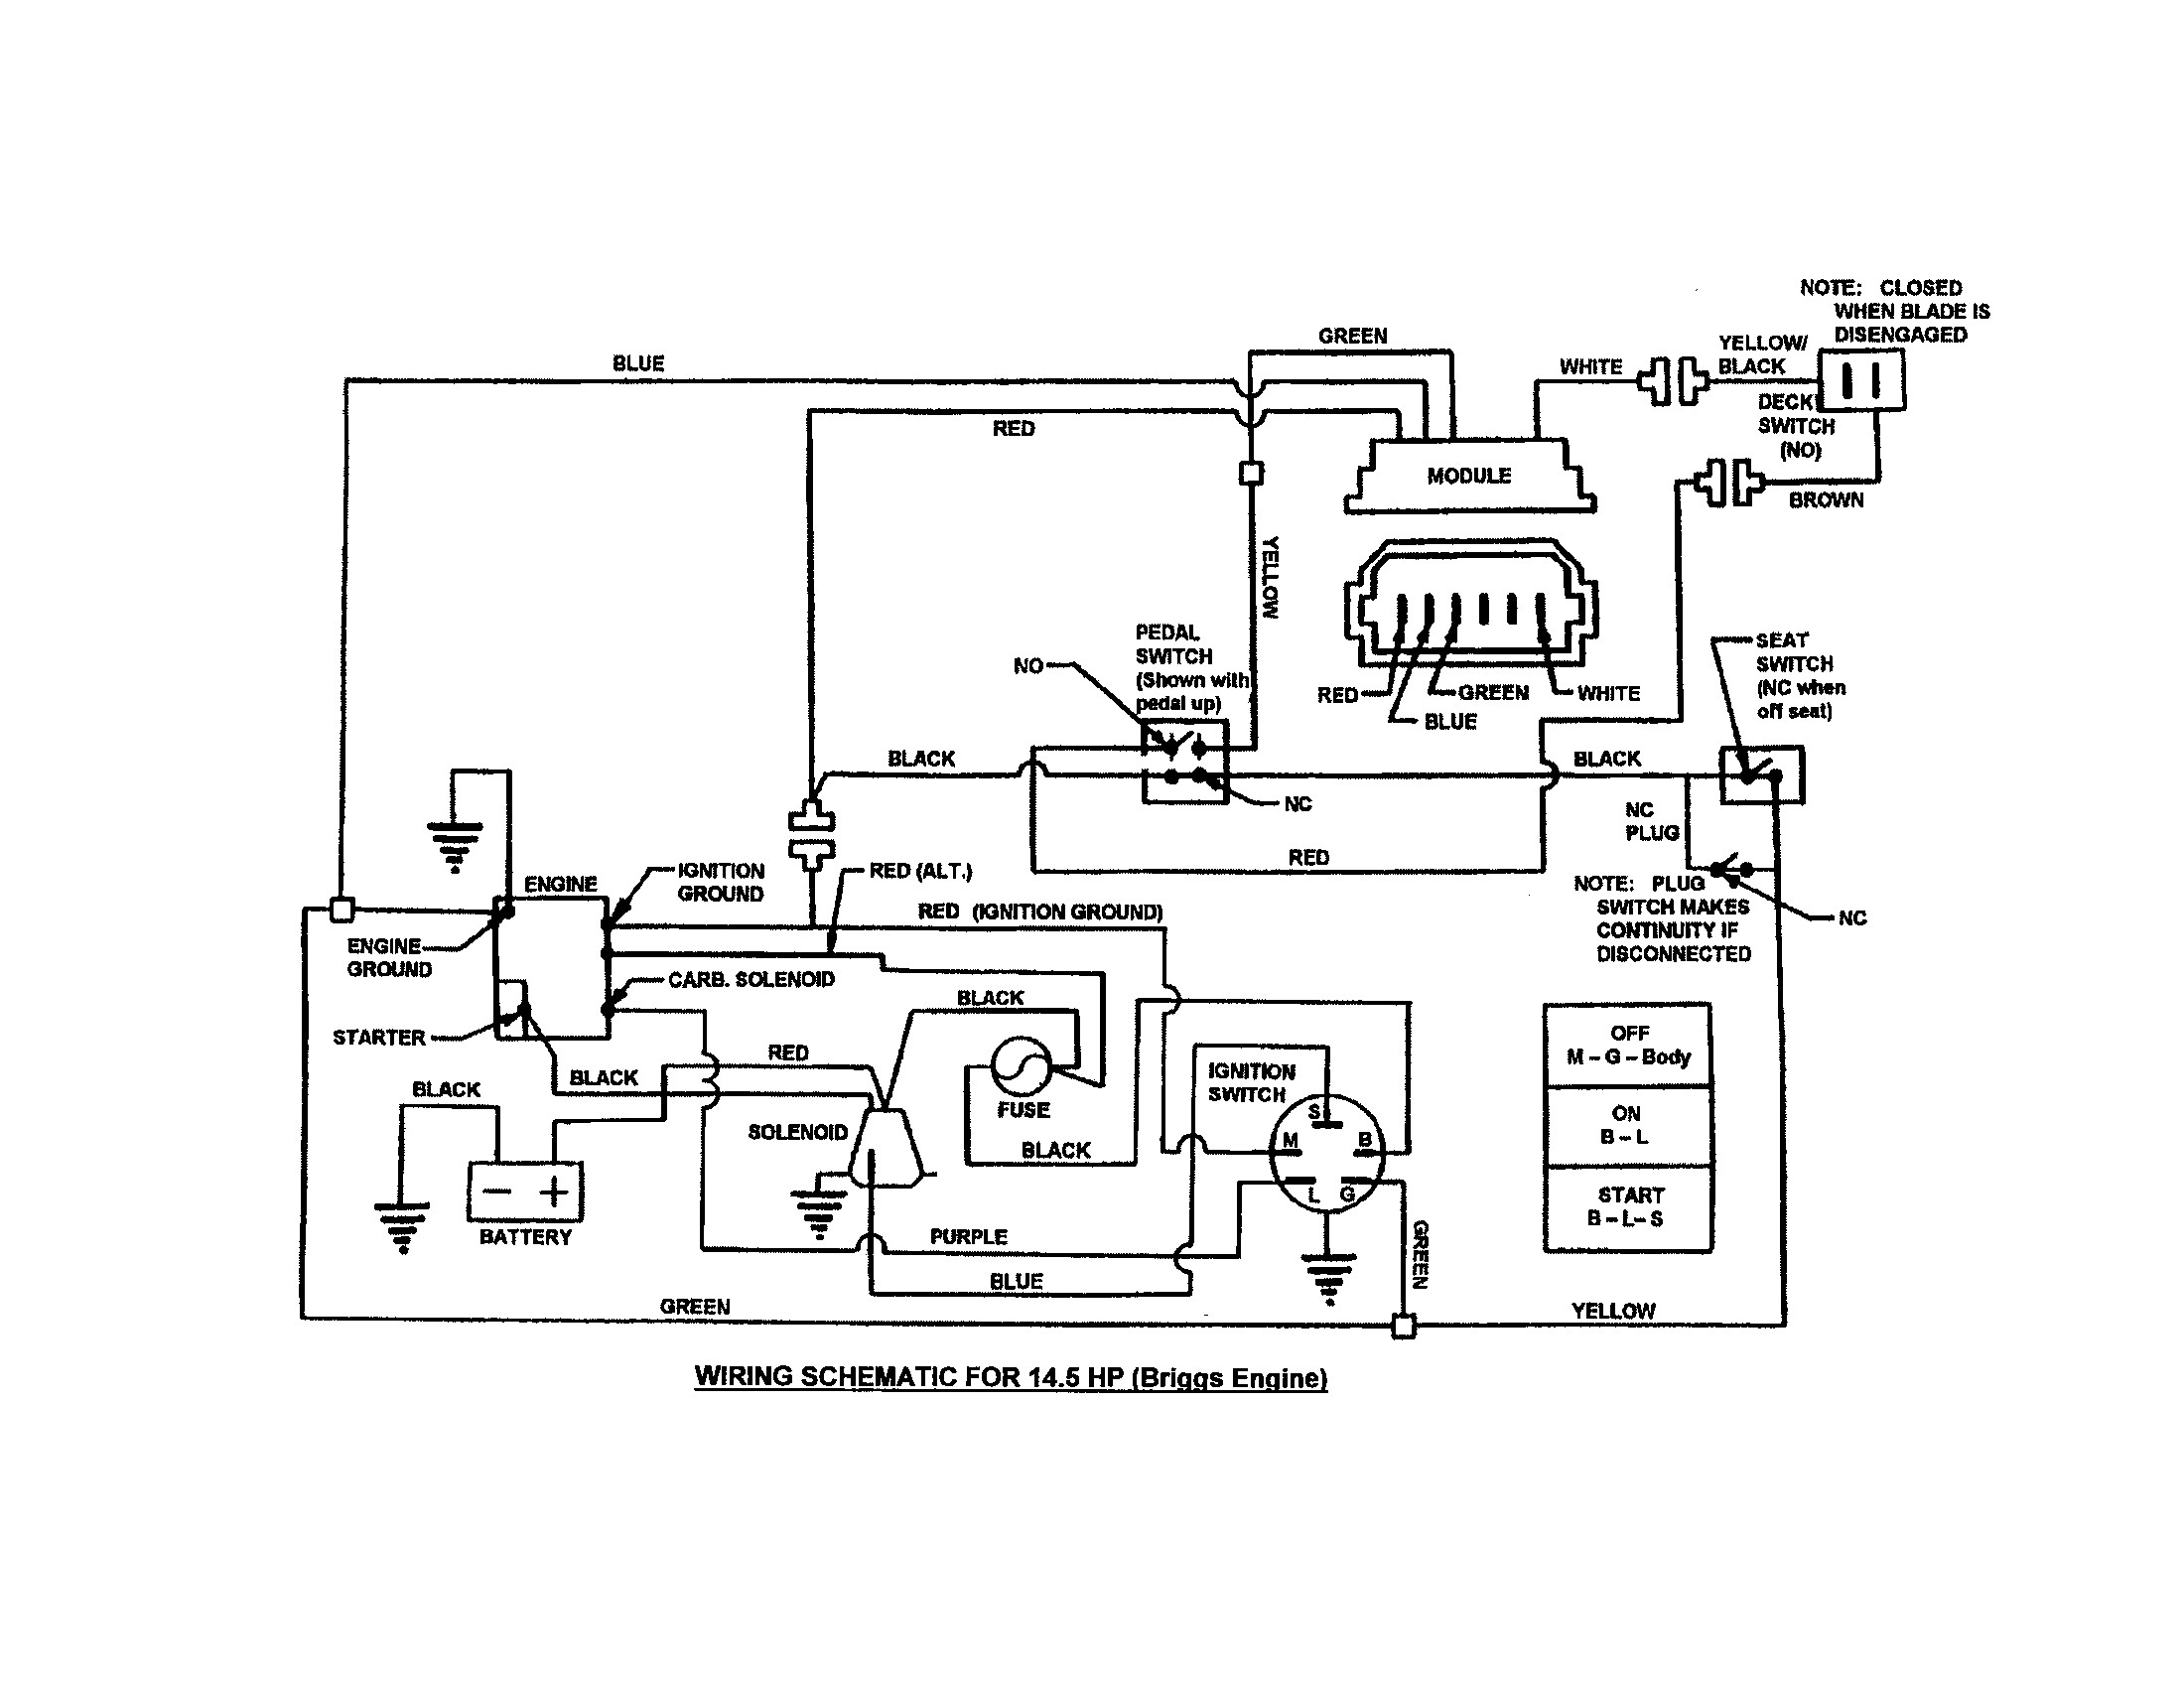 wiring diagram for murray riding lawn mower wiring diagrammurray 405000x8 wiring diagram wiring schematic diagrammurray 425001x8 wiring diagram gilson tractor wiring diagram murray mower